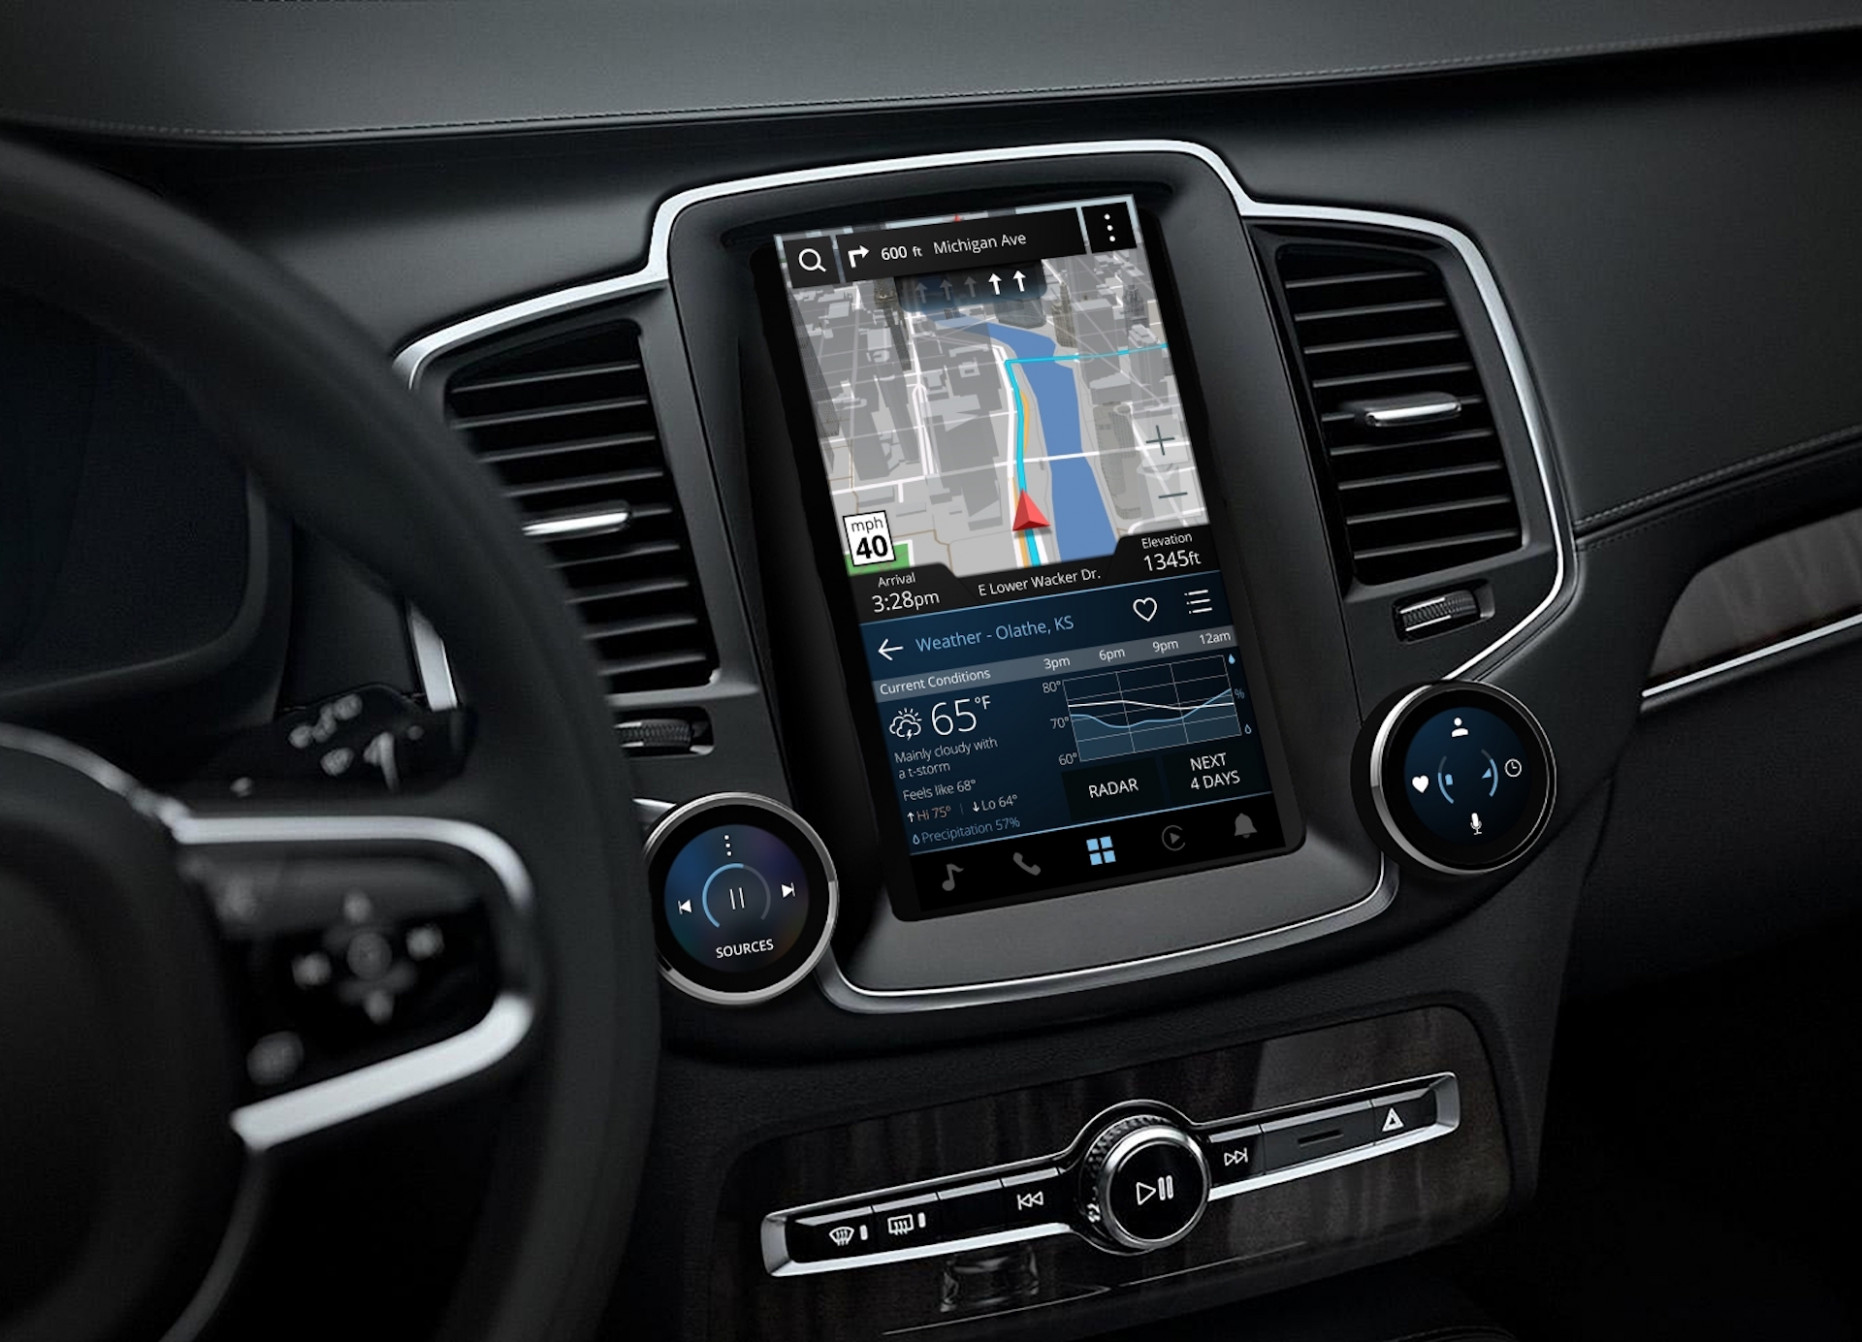 Did Garmin just reveal the 11 Volvo S11/V11 interior?